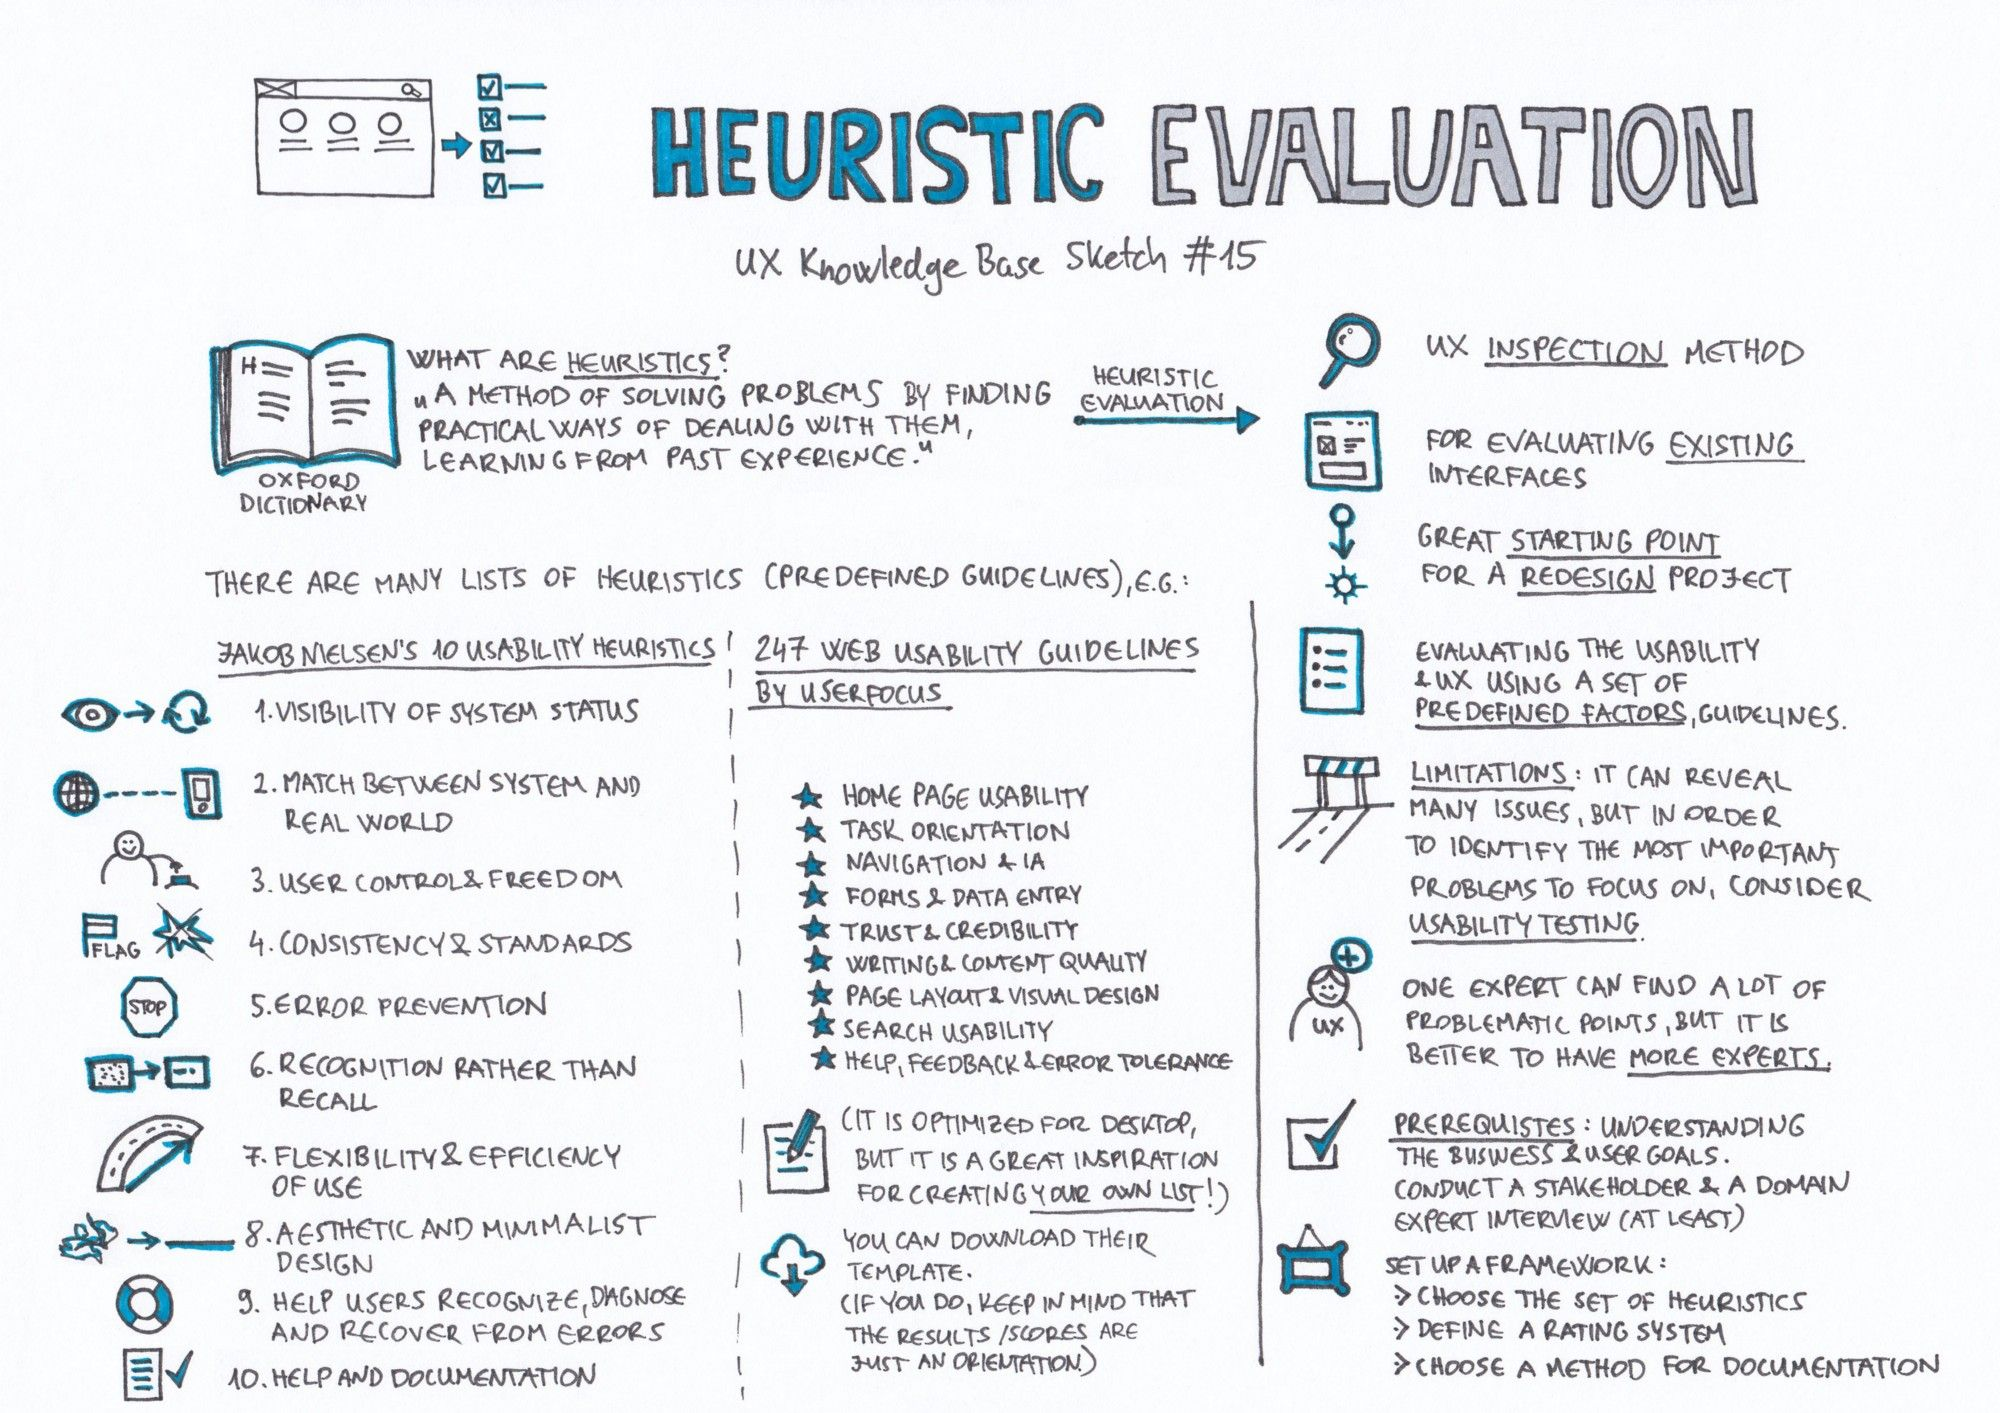 Pin By Lydia Xie On Users In 2020 Heuristic Evaluation Ux Design Principles Product Development Process